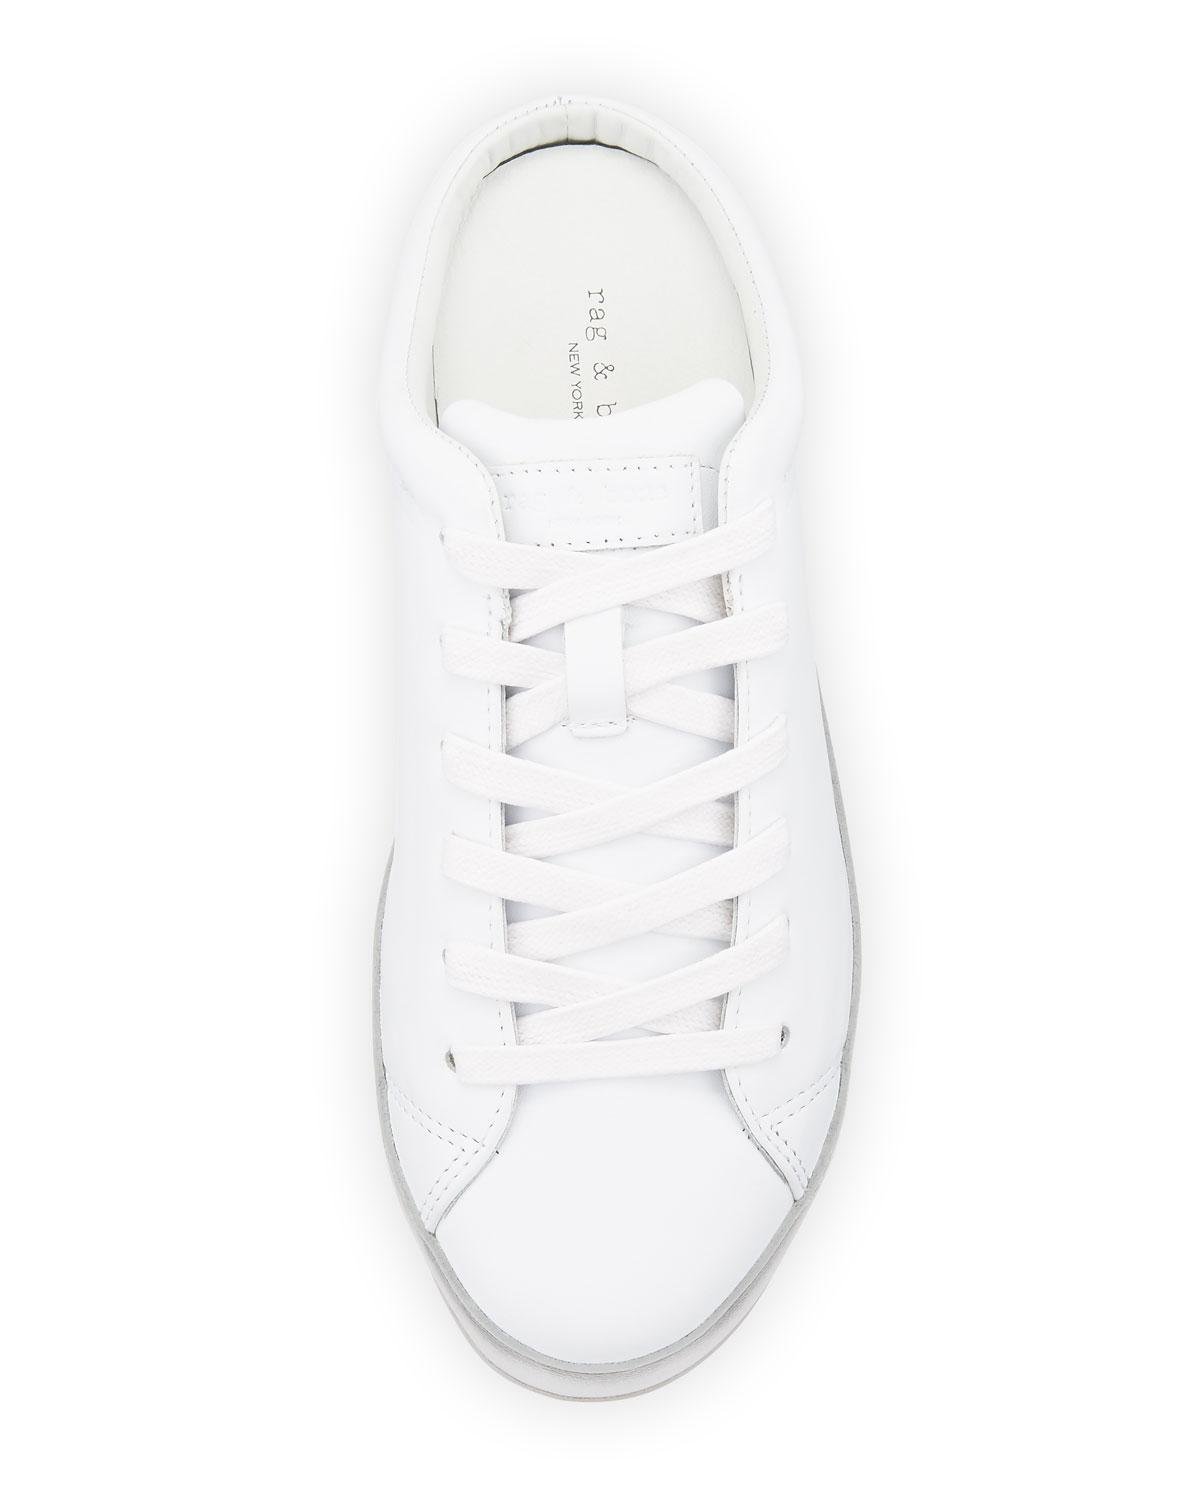 b739eb49b9235 Rag & Bone Rb1 Leather Sneakers-style Mule in White - Lyst